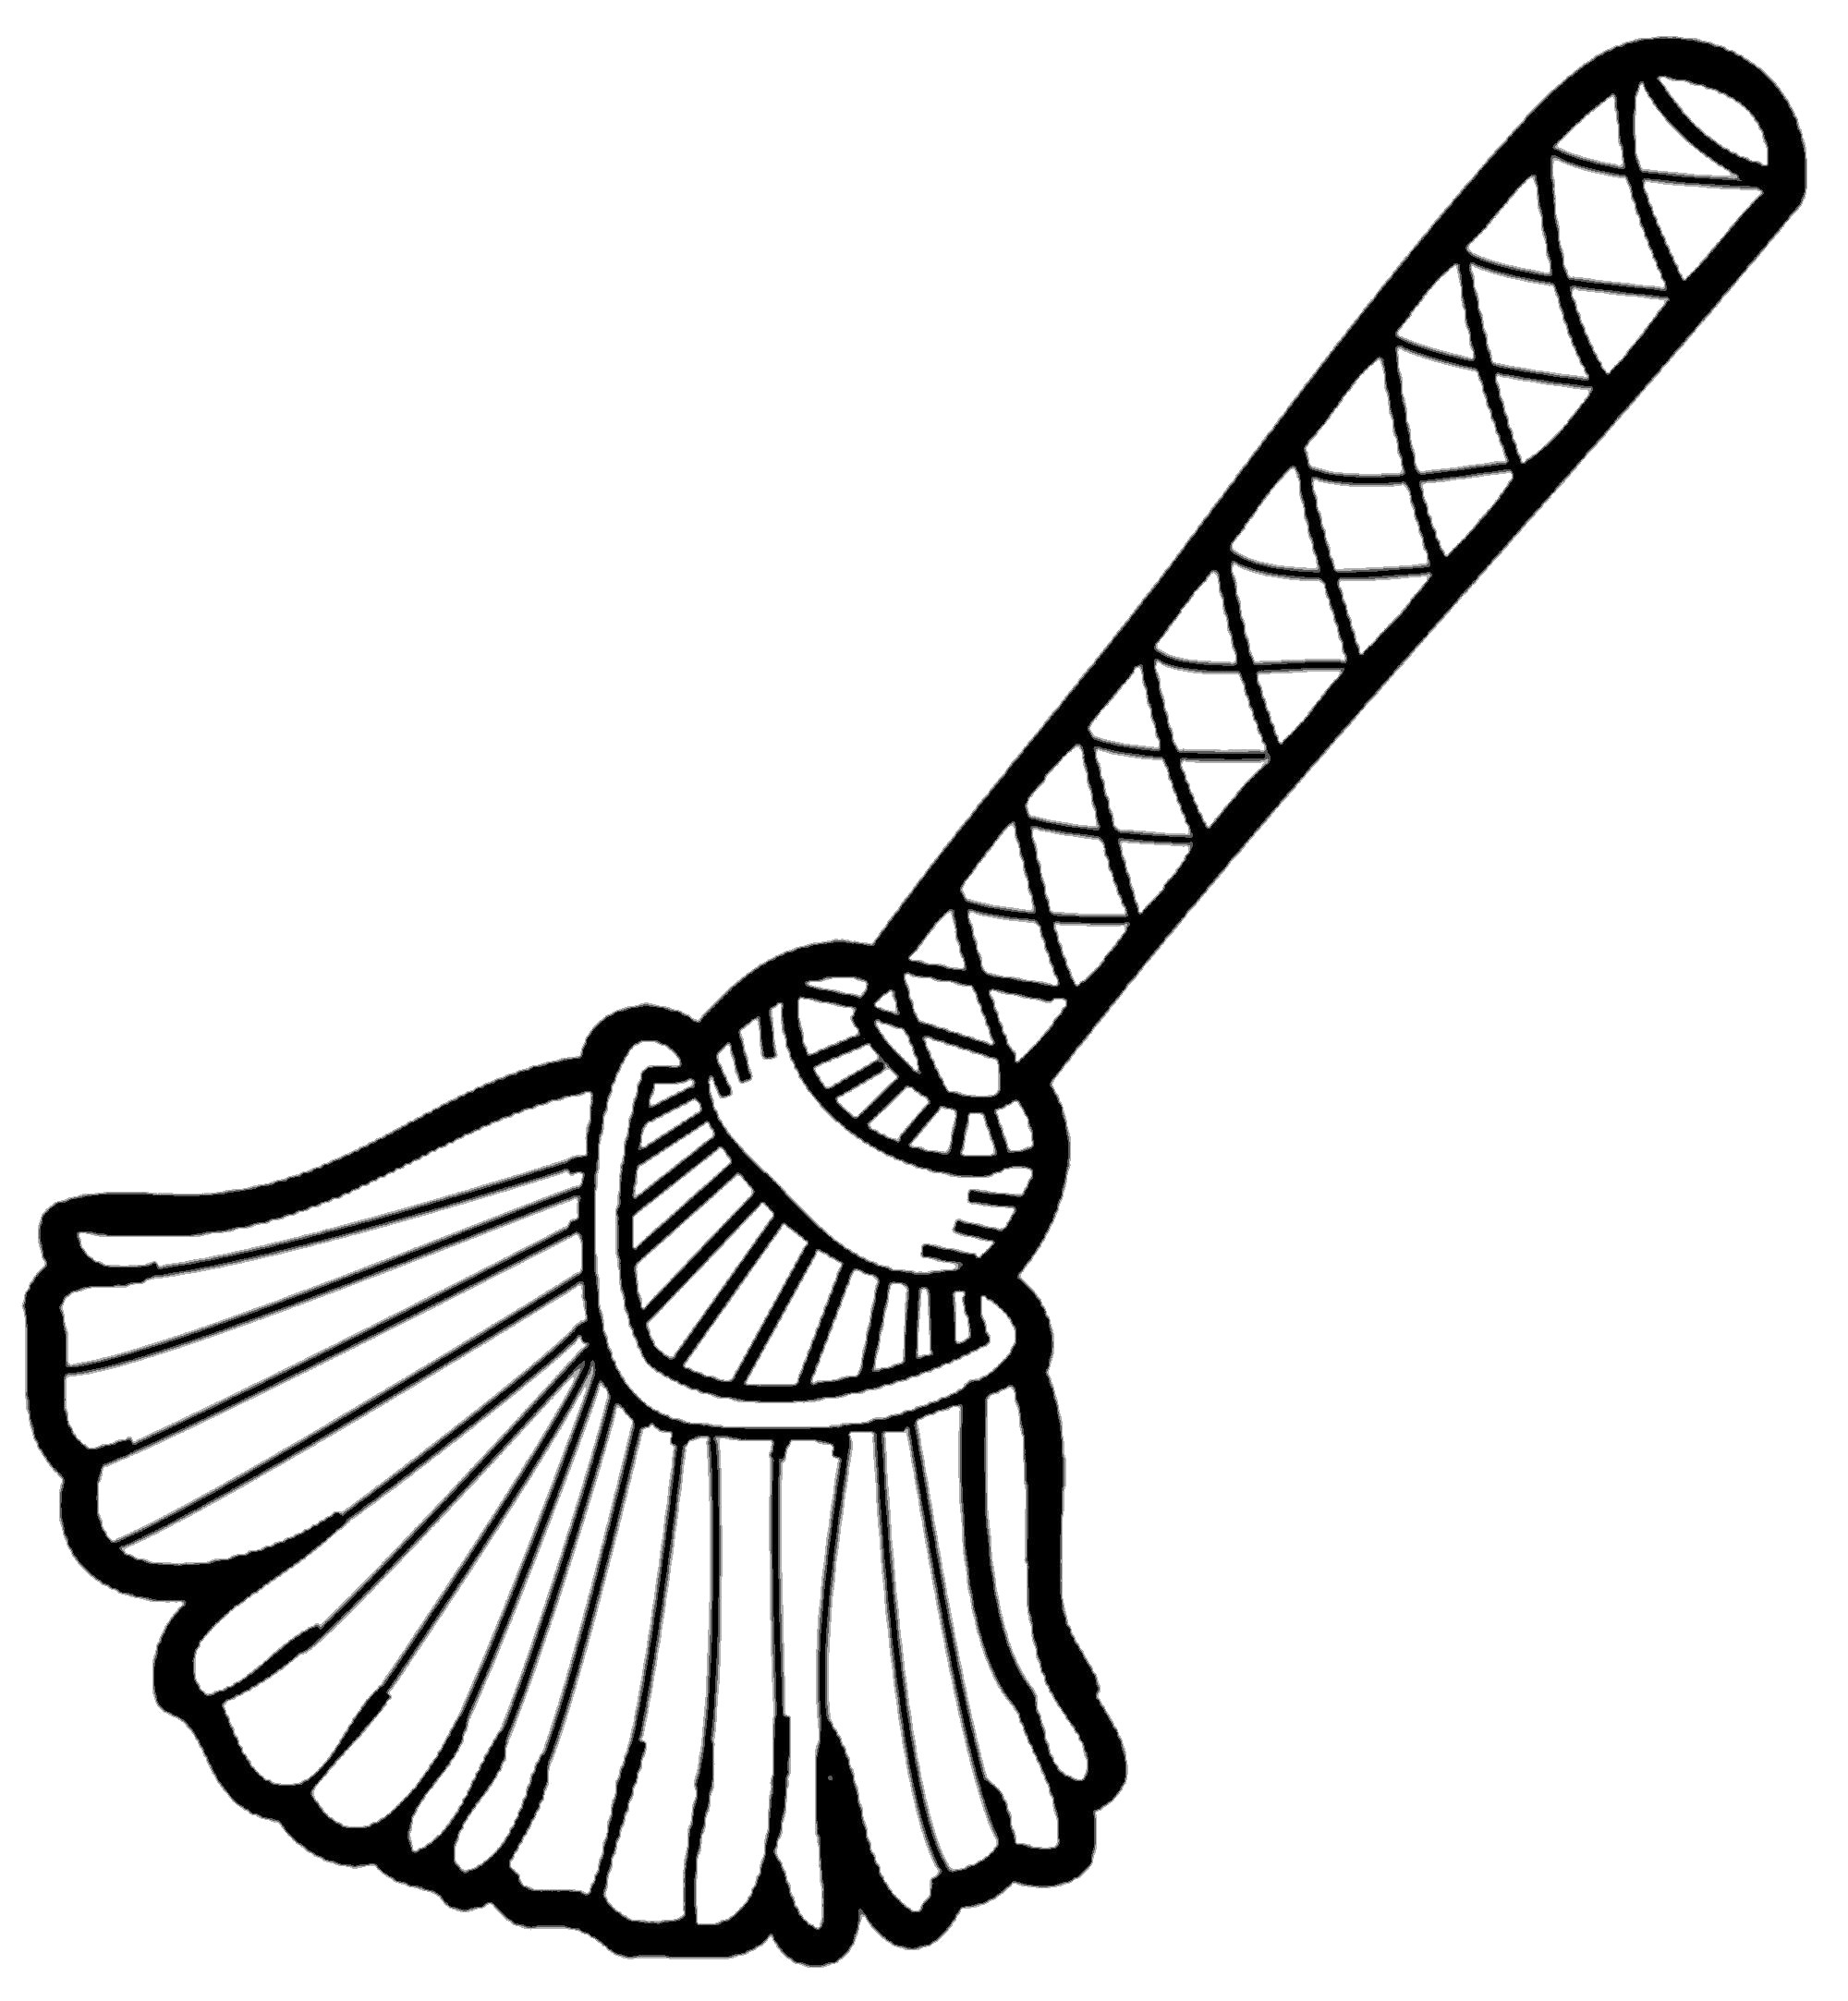 Black and white broom clipart banner download Broom black and white clipart 6 » Clipart Station banner download